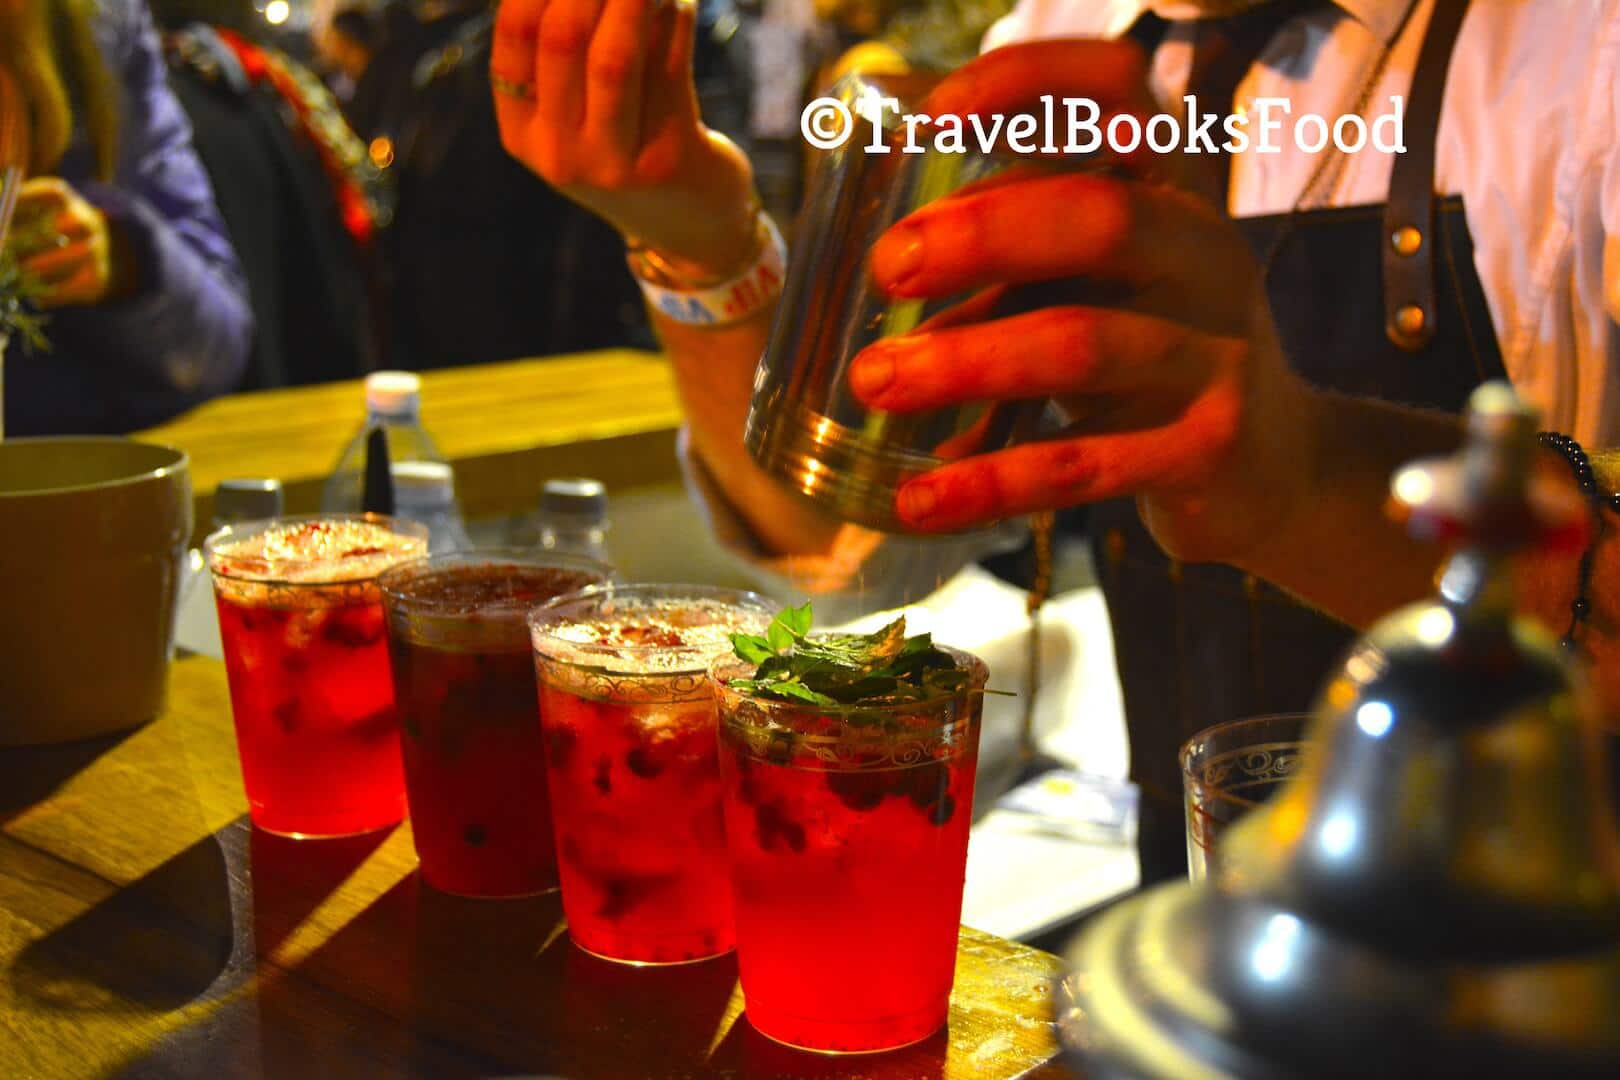 A waiter mixing four glasses of Pomegranate based cocktails